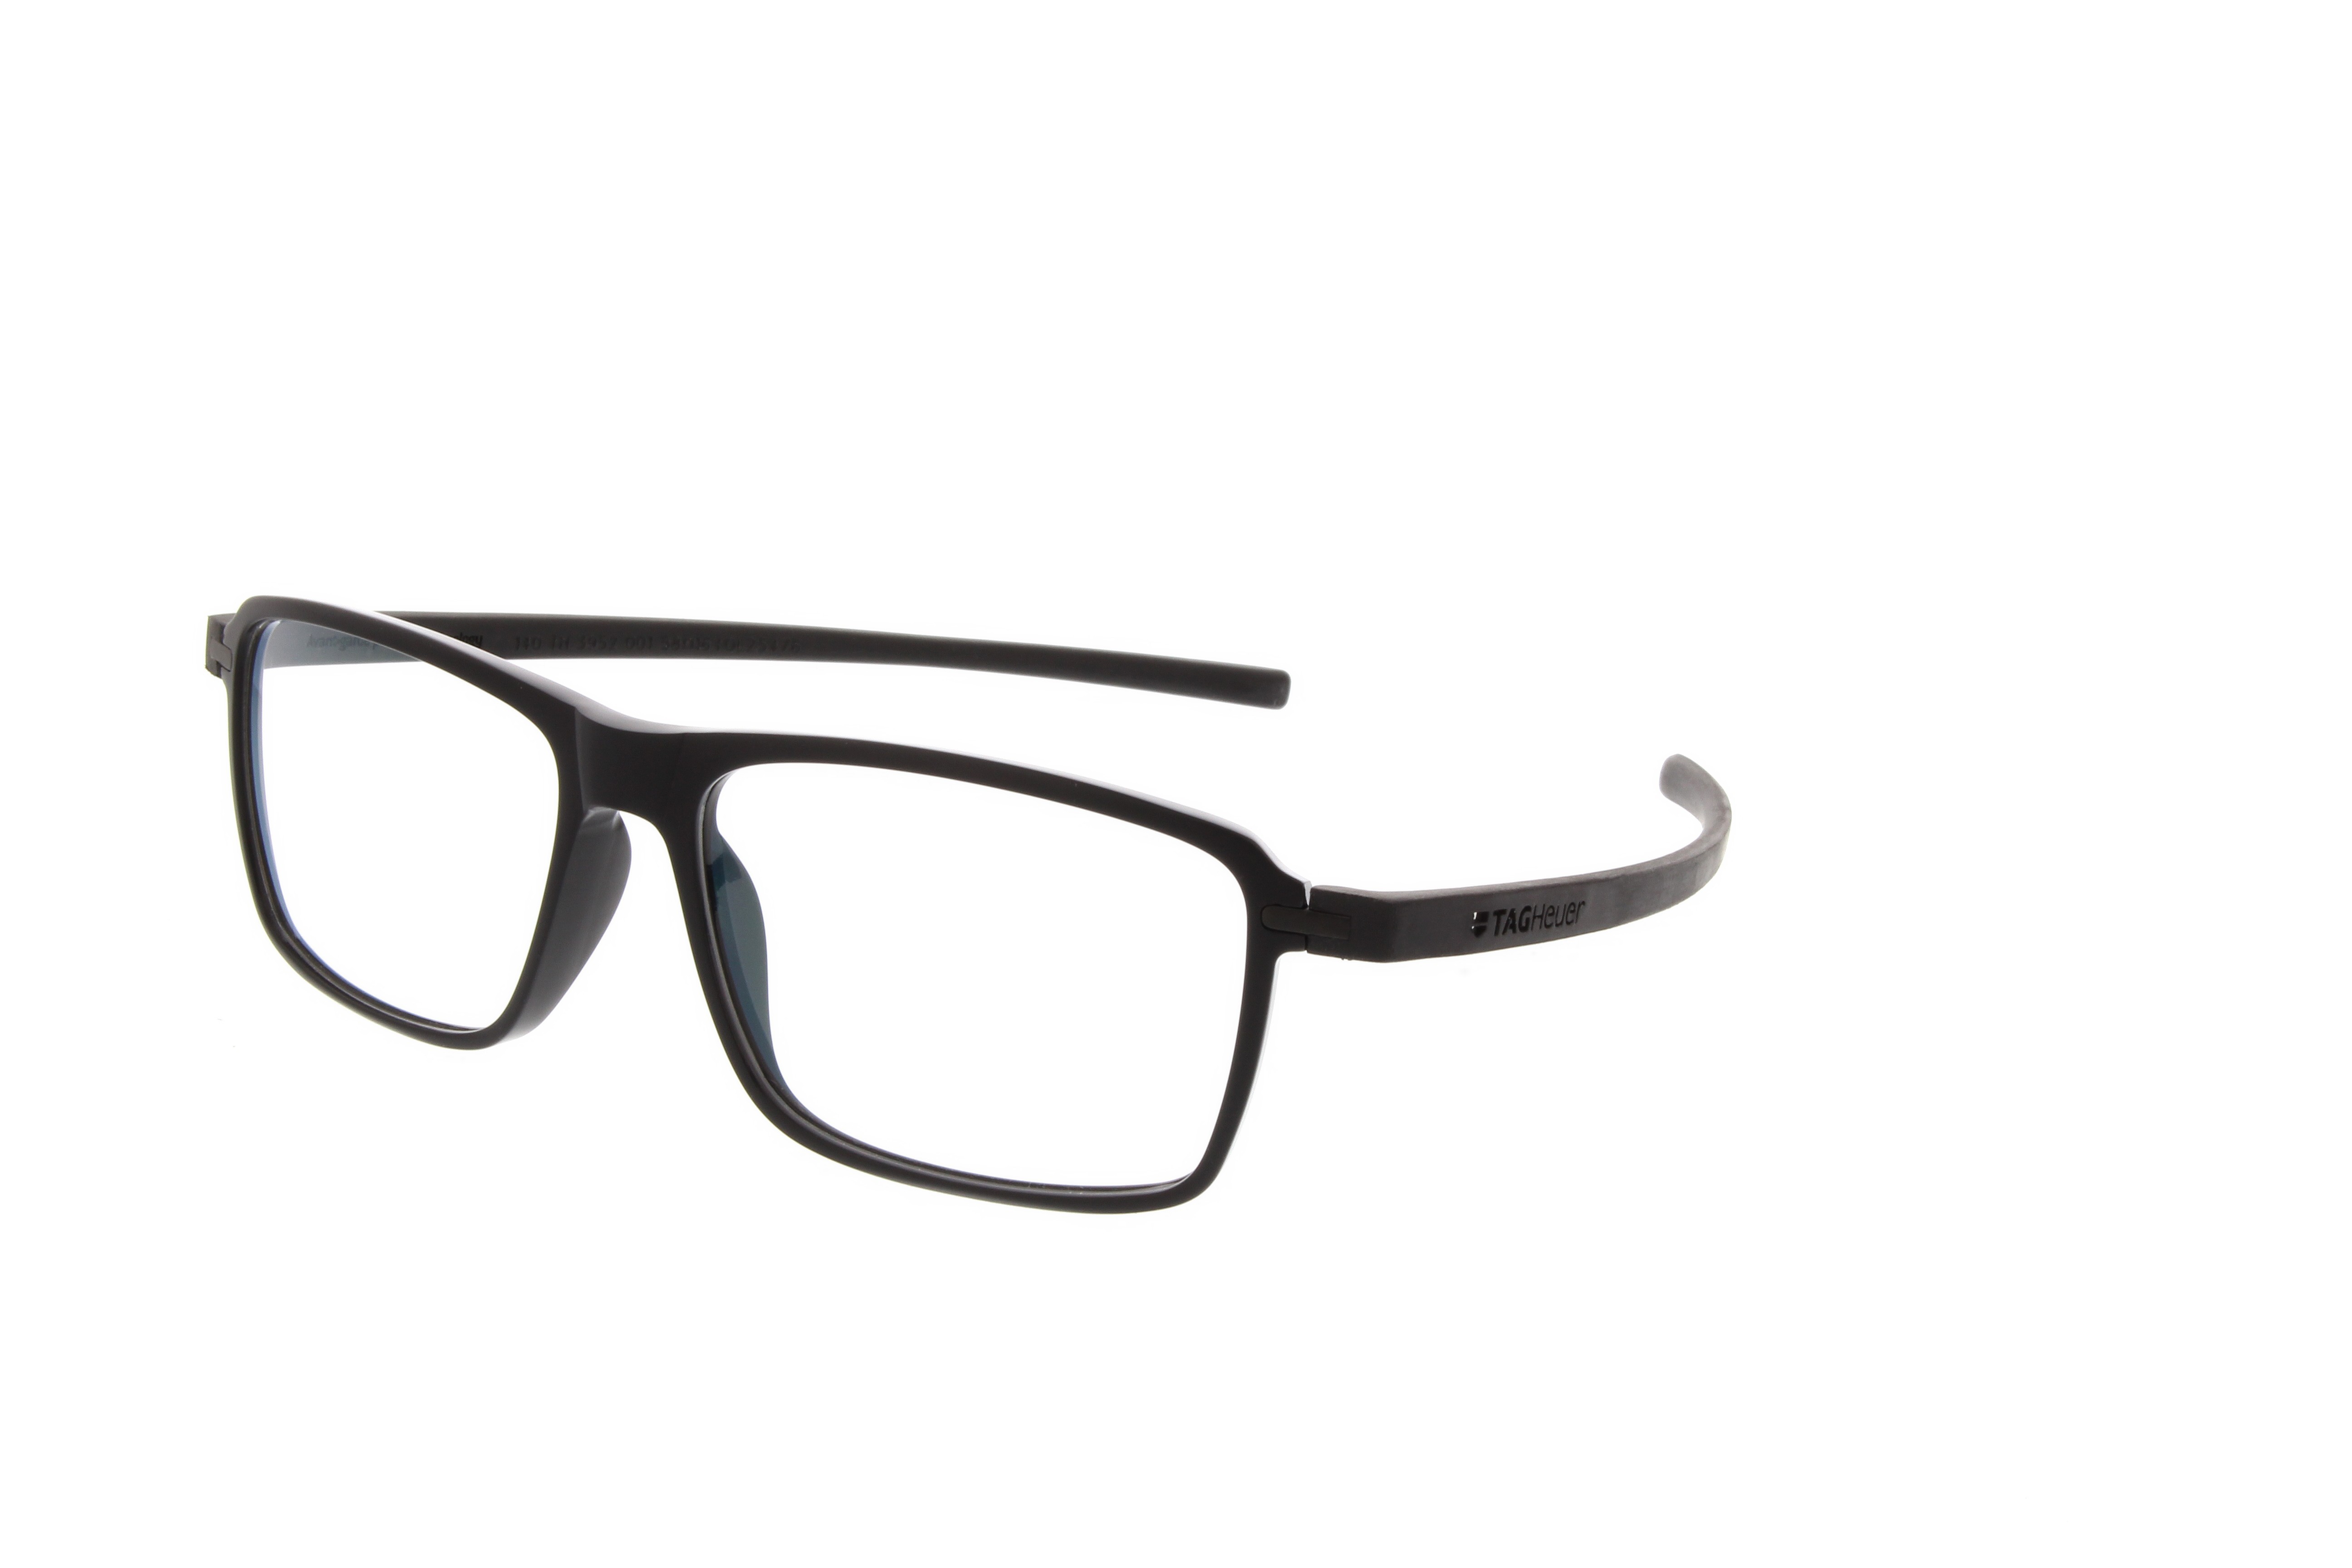 Tag heuer eye frames price for Decor my eyes